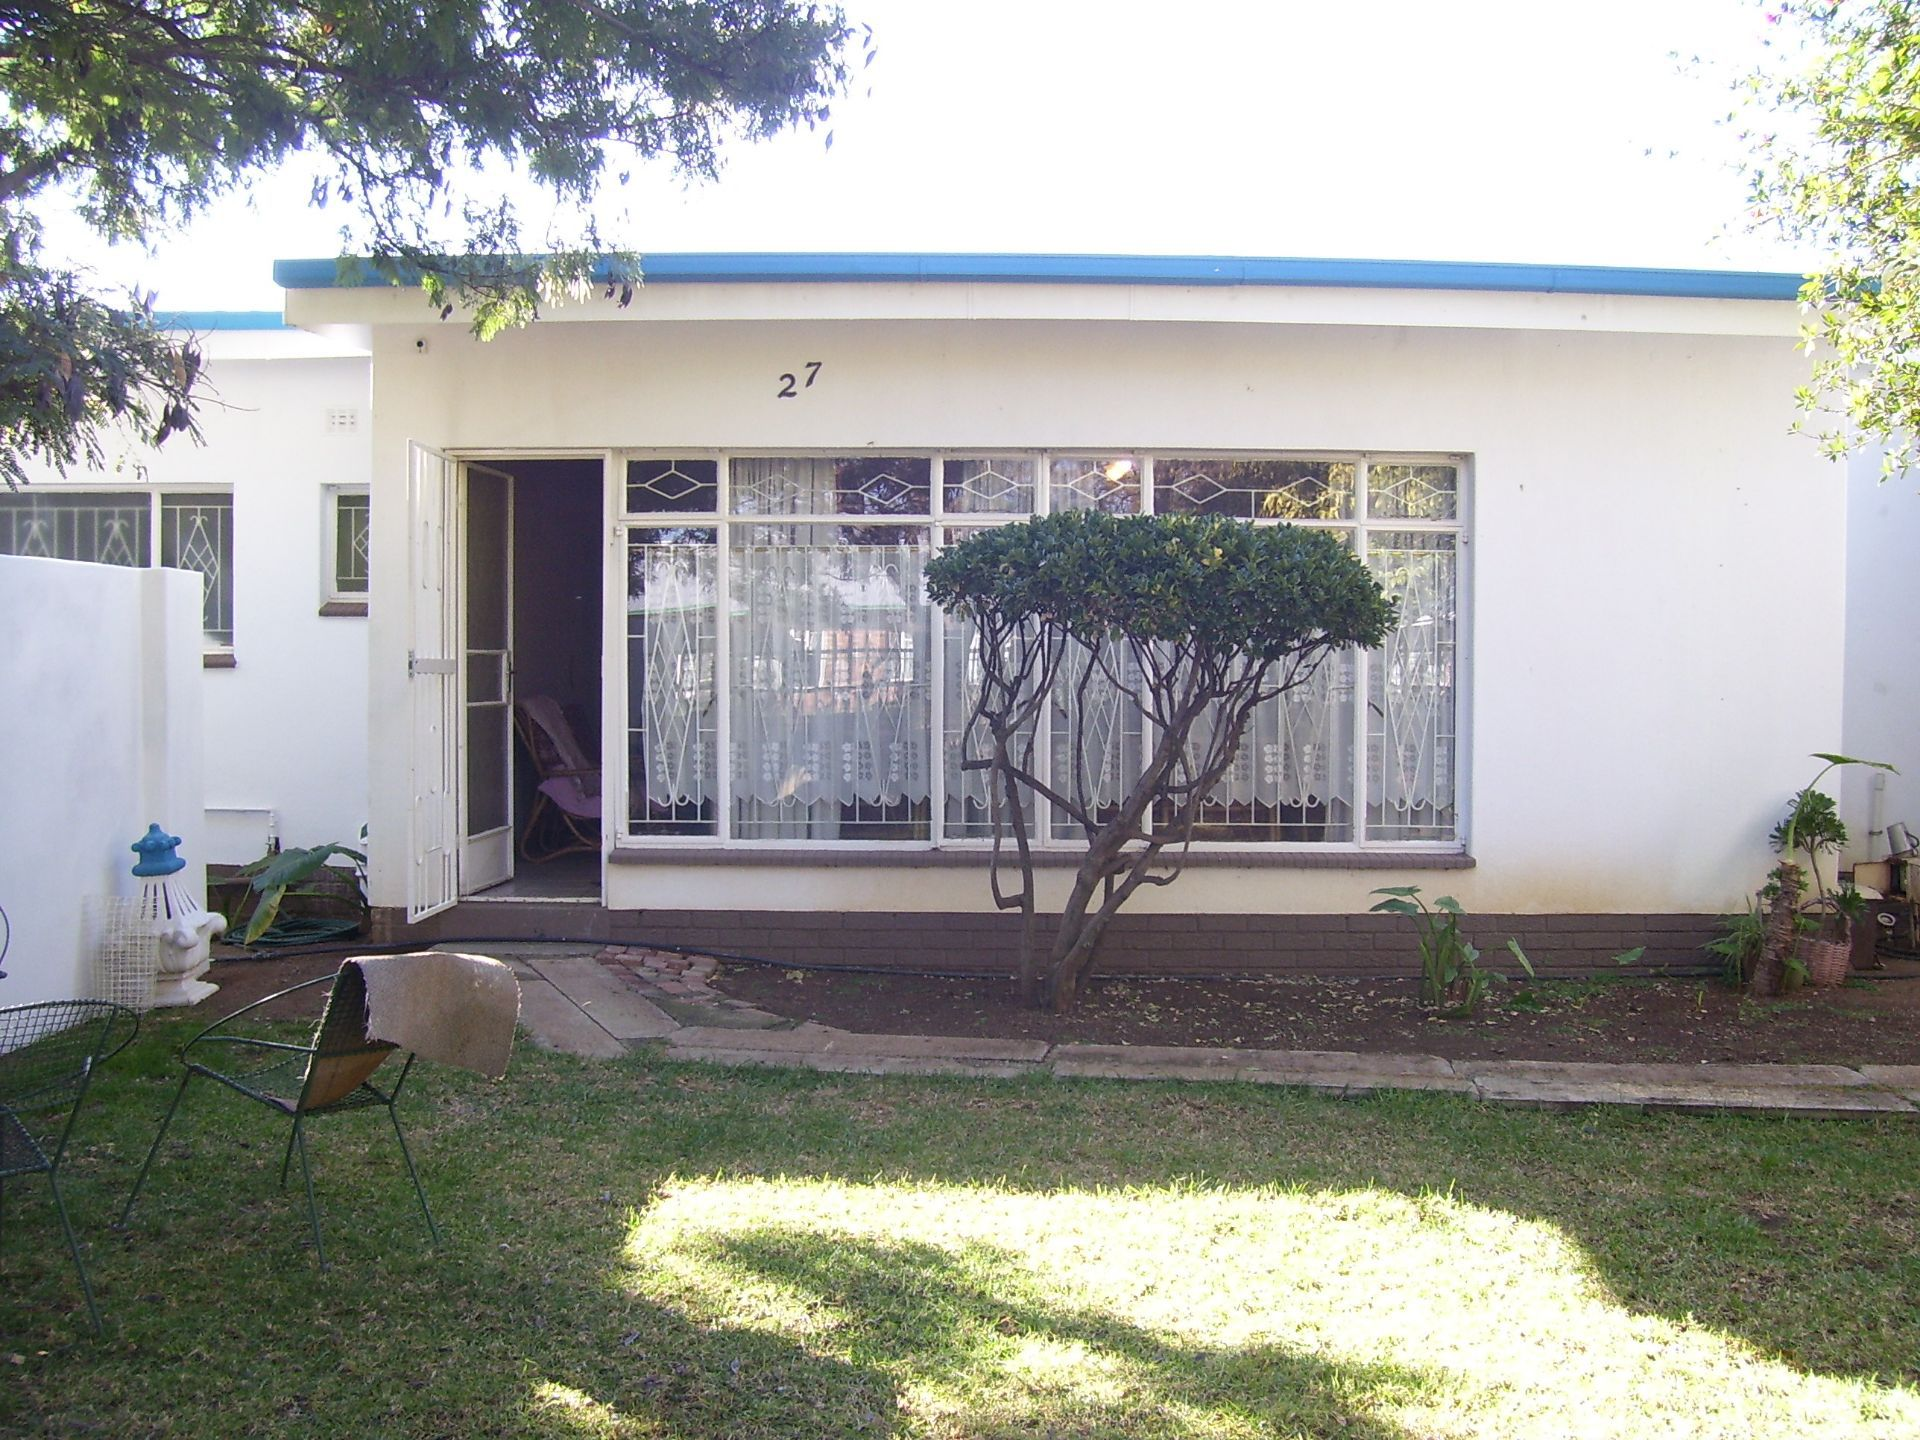 Suid Dorp property for sale. Ref No: 13503243. Picture no 3